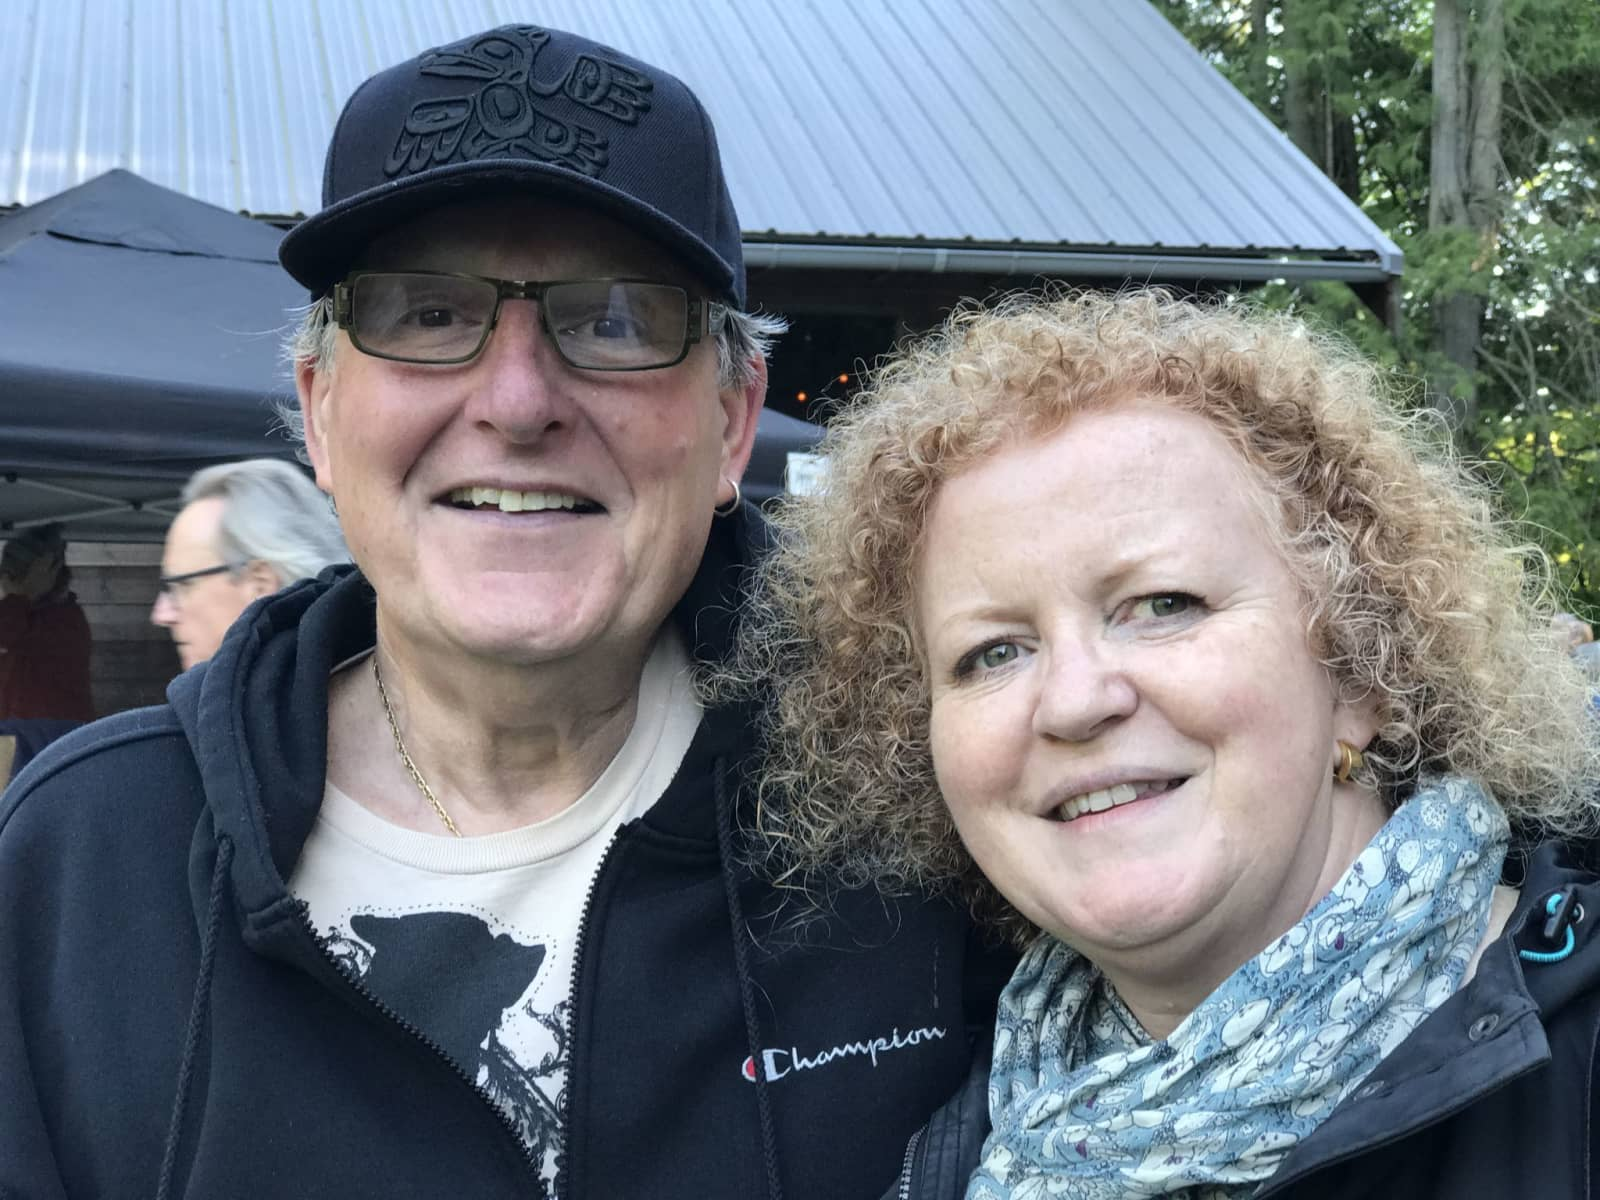 Susan & Richard from Vancouver, British Columbia, Canada